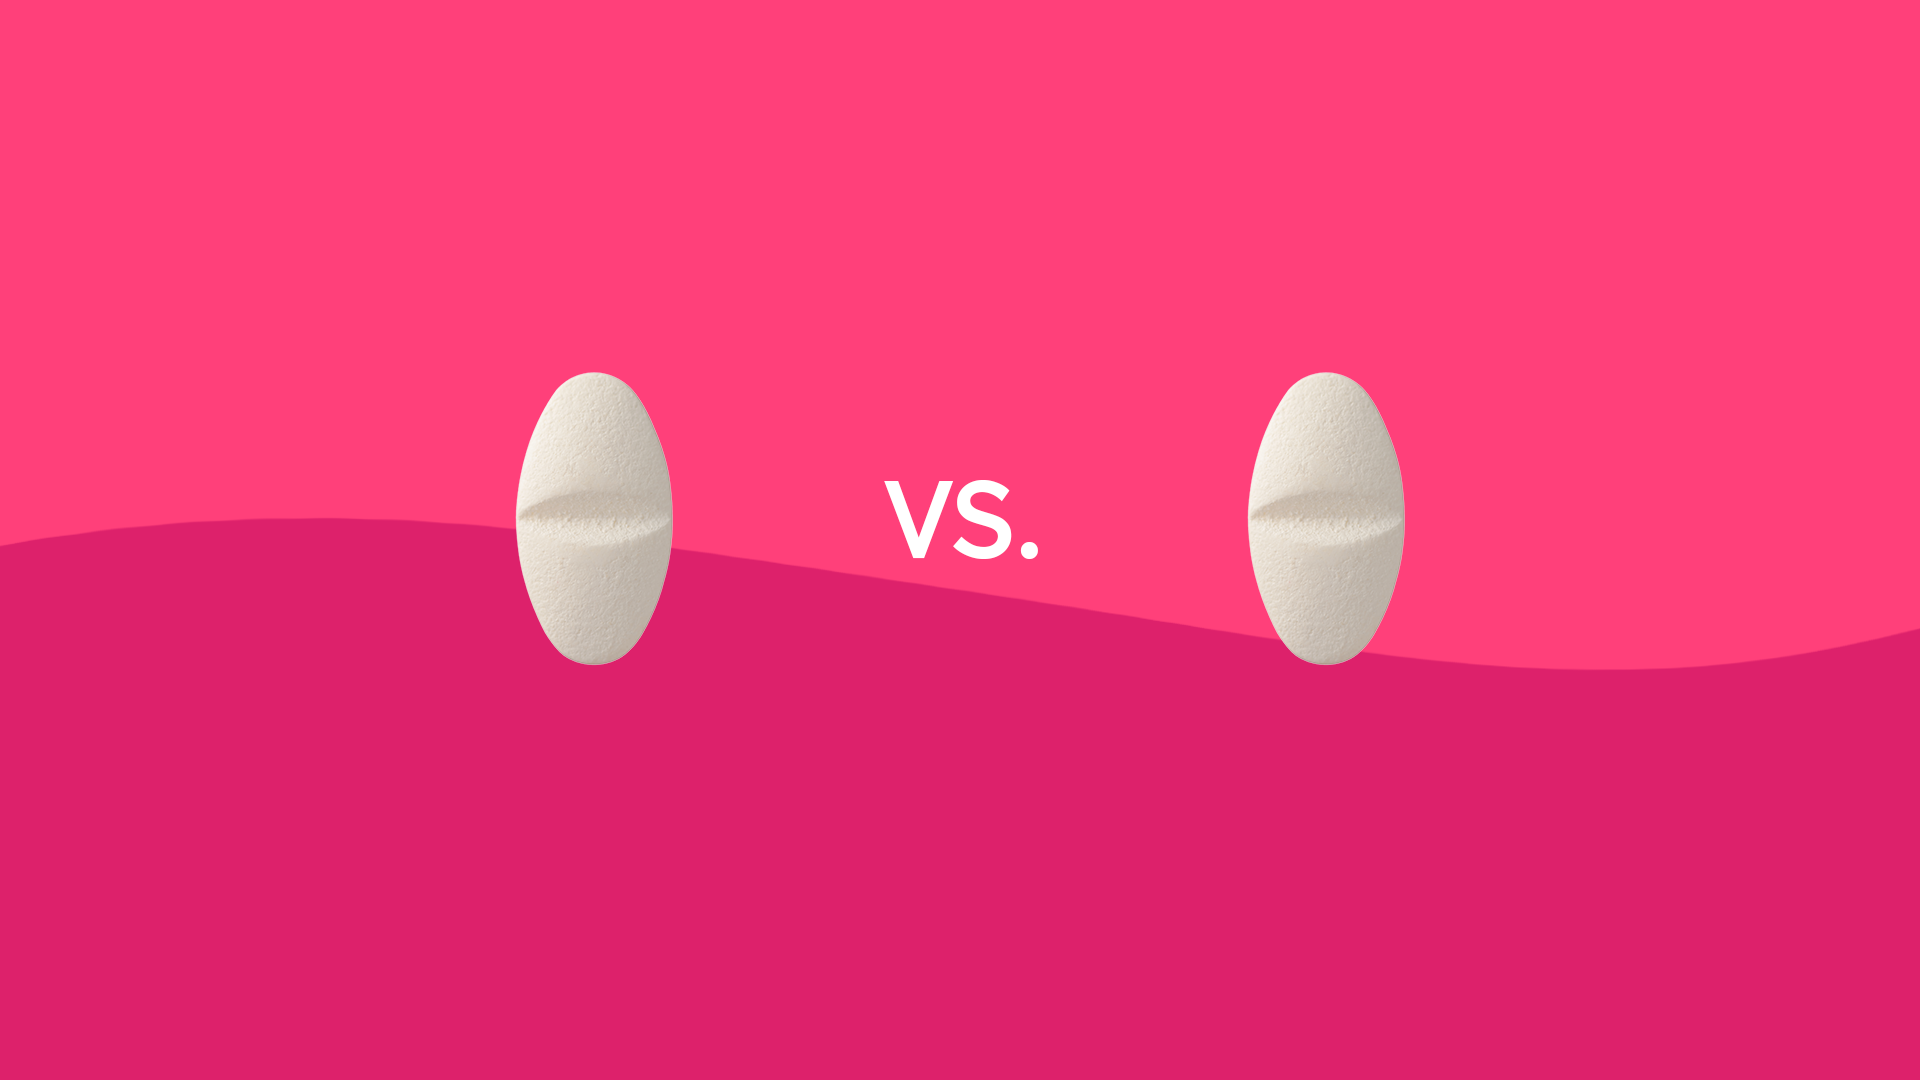 Metformin vs. metformin ER: Differences, similarities, and which is better for you